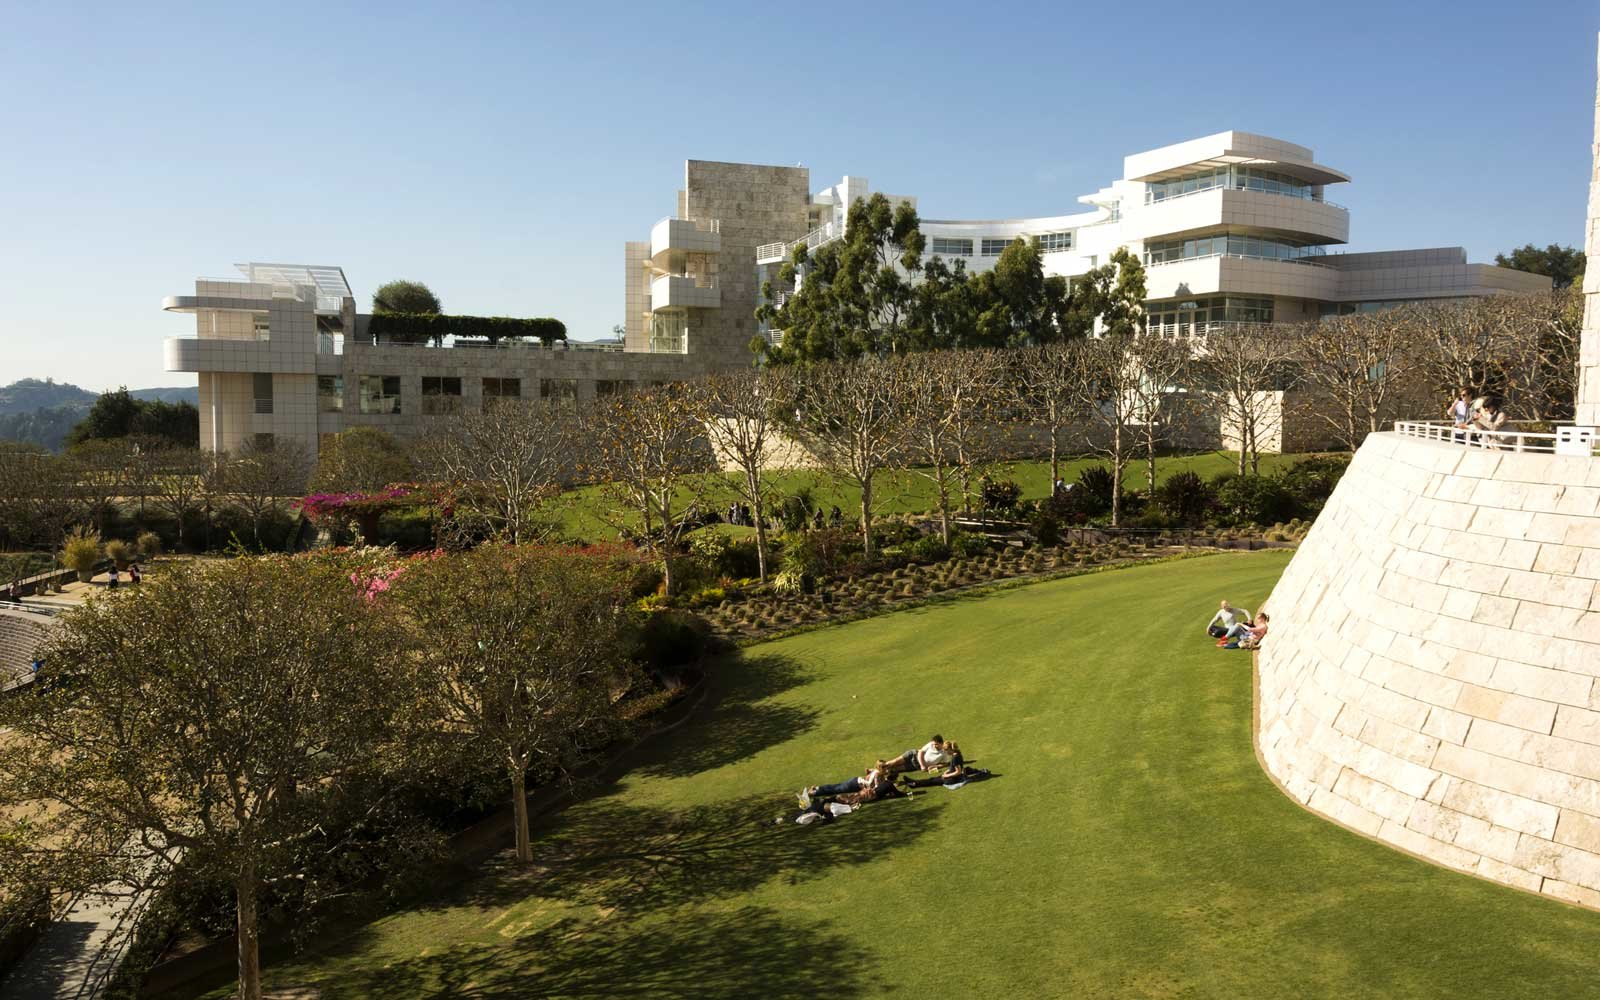 Los Angeles, Getty Center exterior and grounds